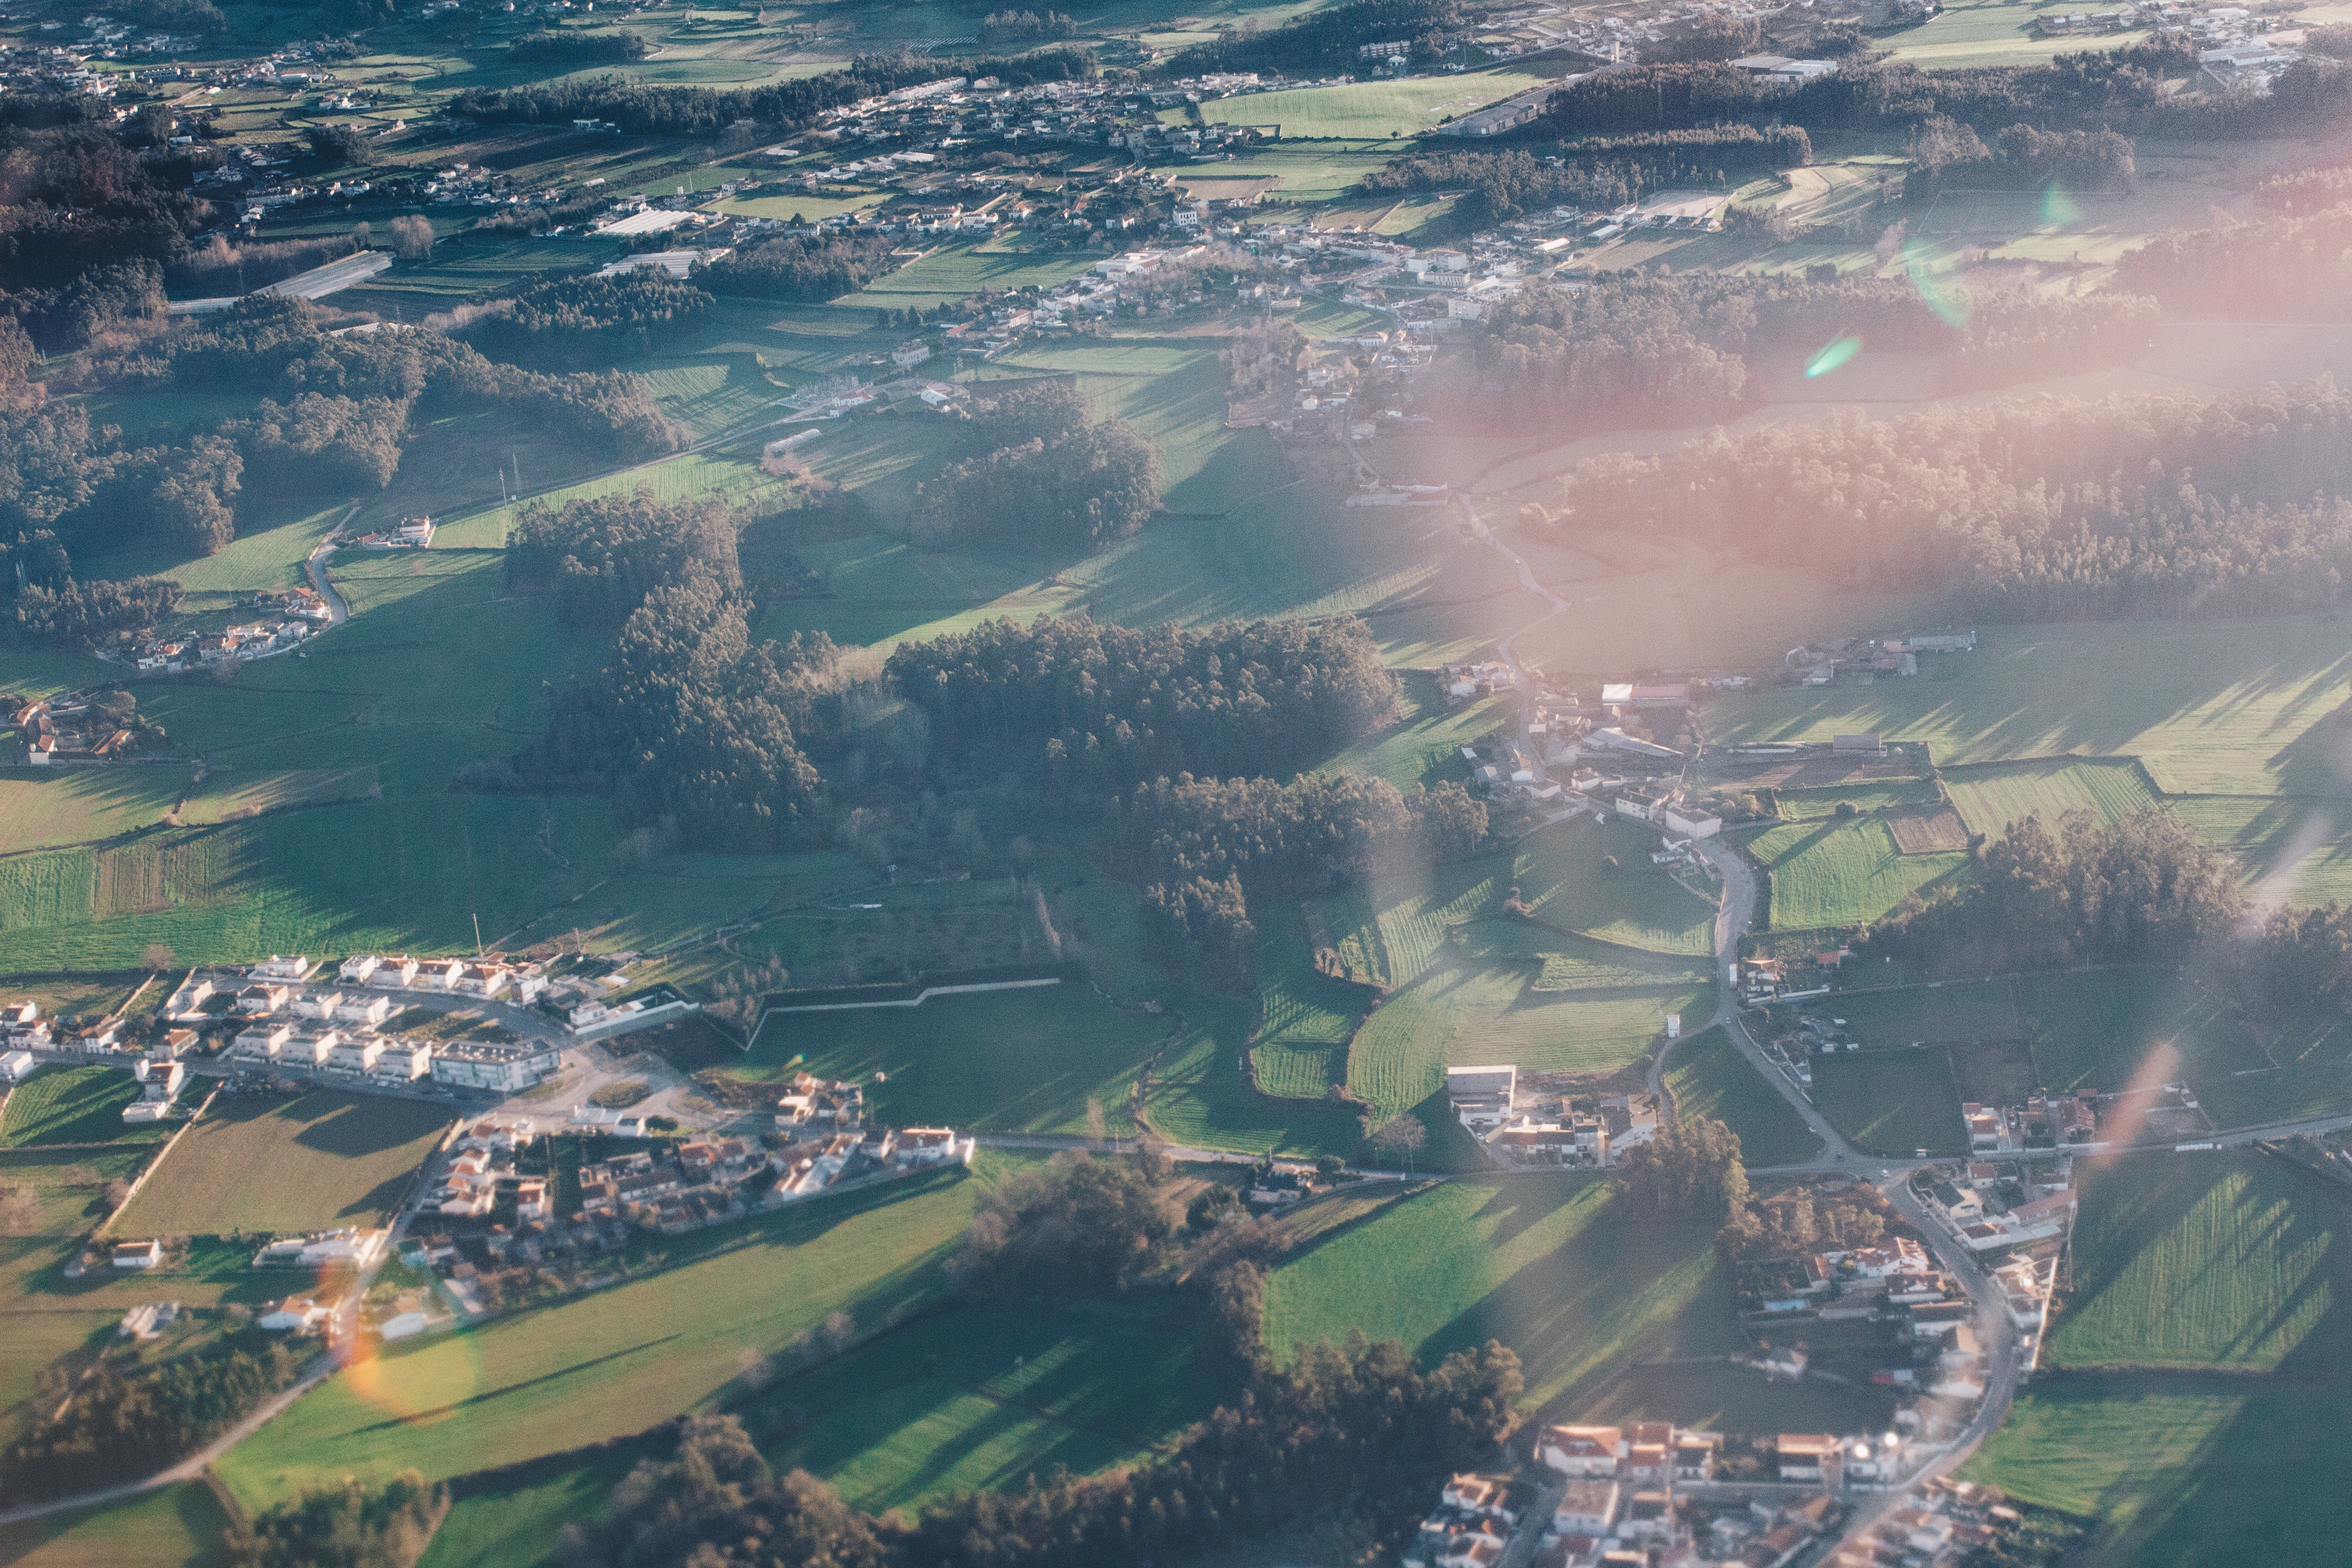 Aerial View of Town, Aerial, Outdoors, View, Vehicle, HQ Photo